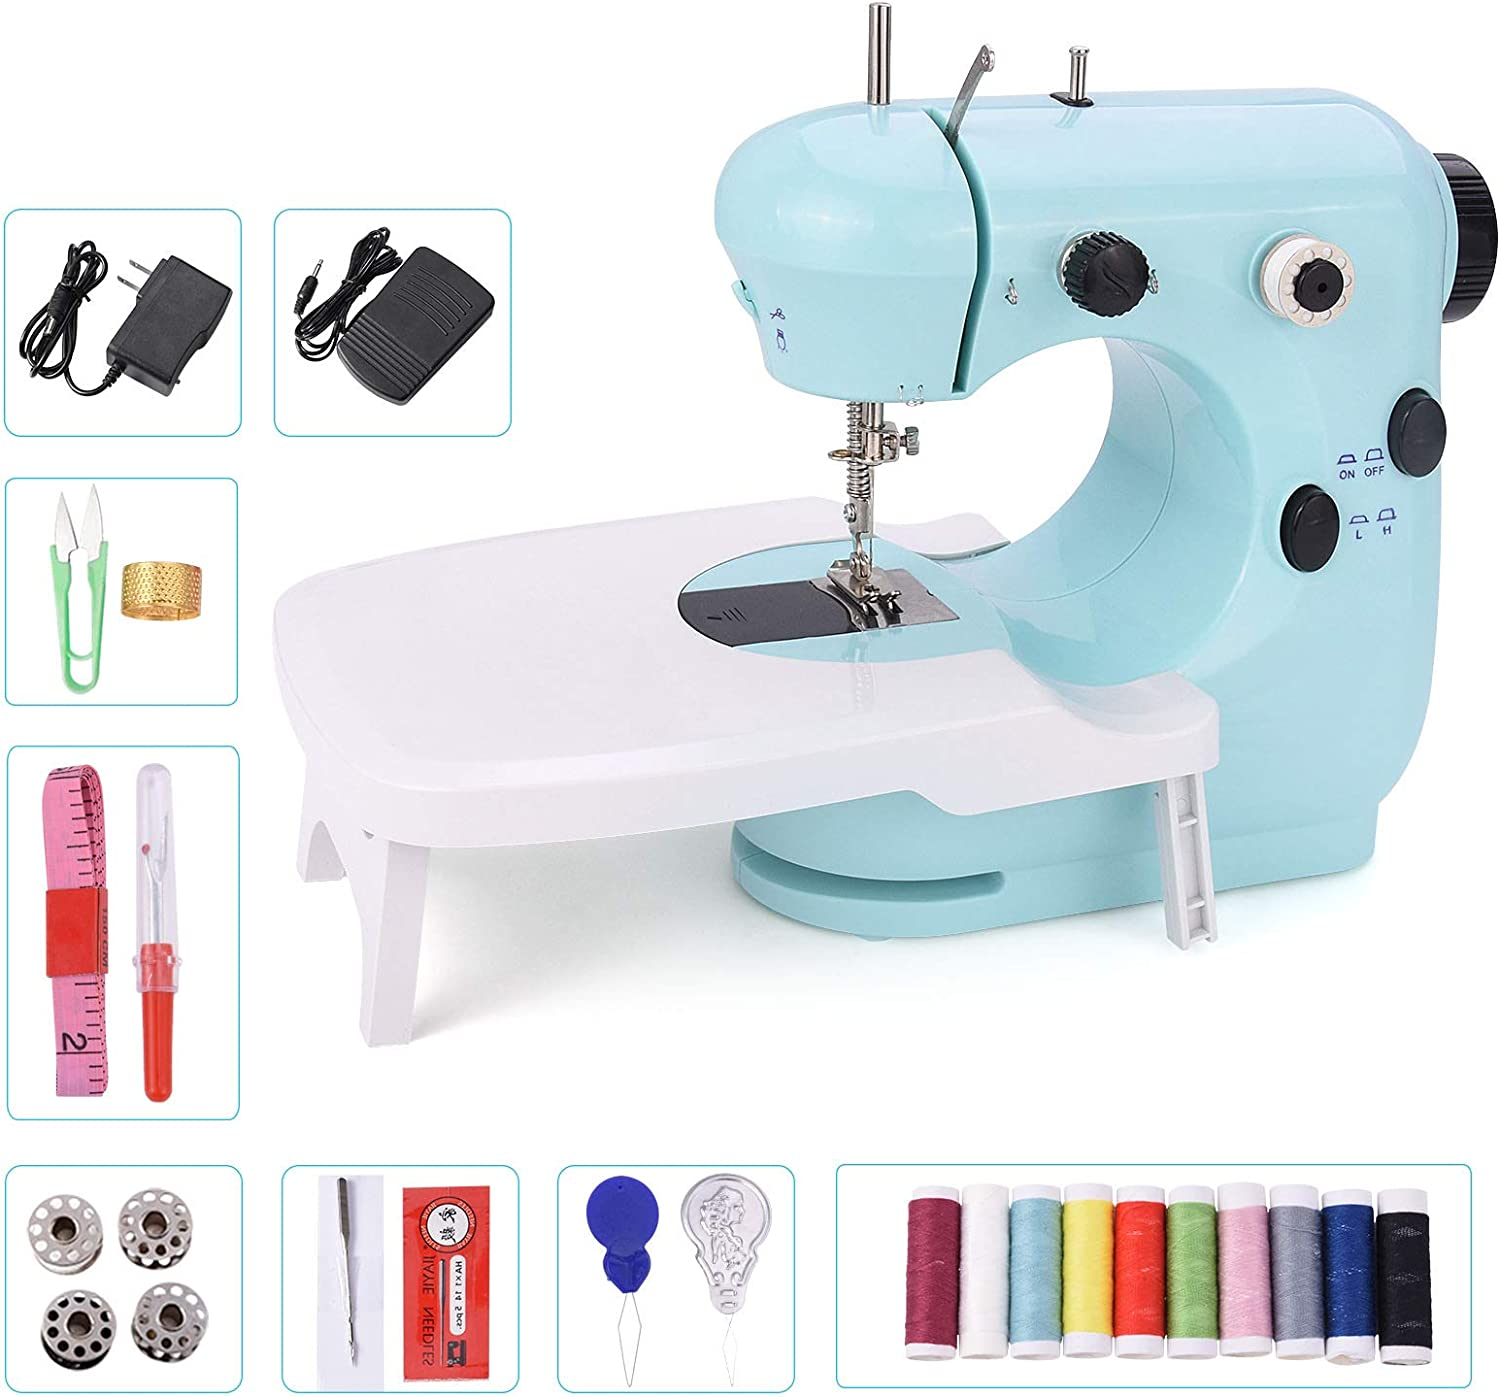 Amazon Com Suteck Mini Sewing Machine For Beginners Portable Electric Sewing Machines With Extension Table Lamp And Thread Cutter With Shared 10 Thread Spools Home Kitchen